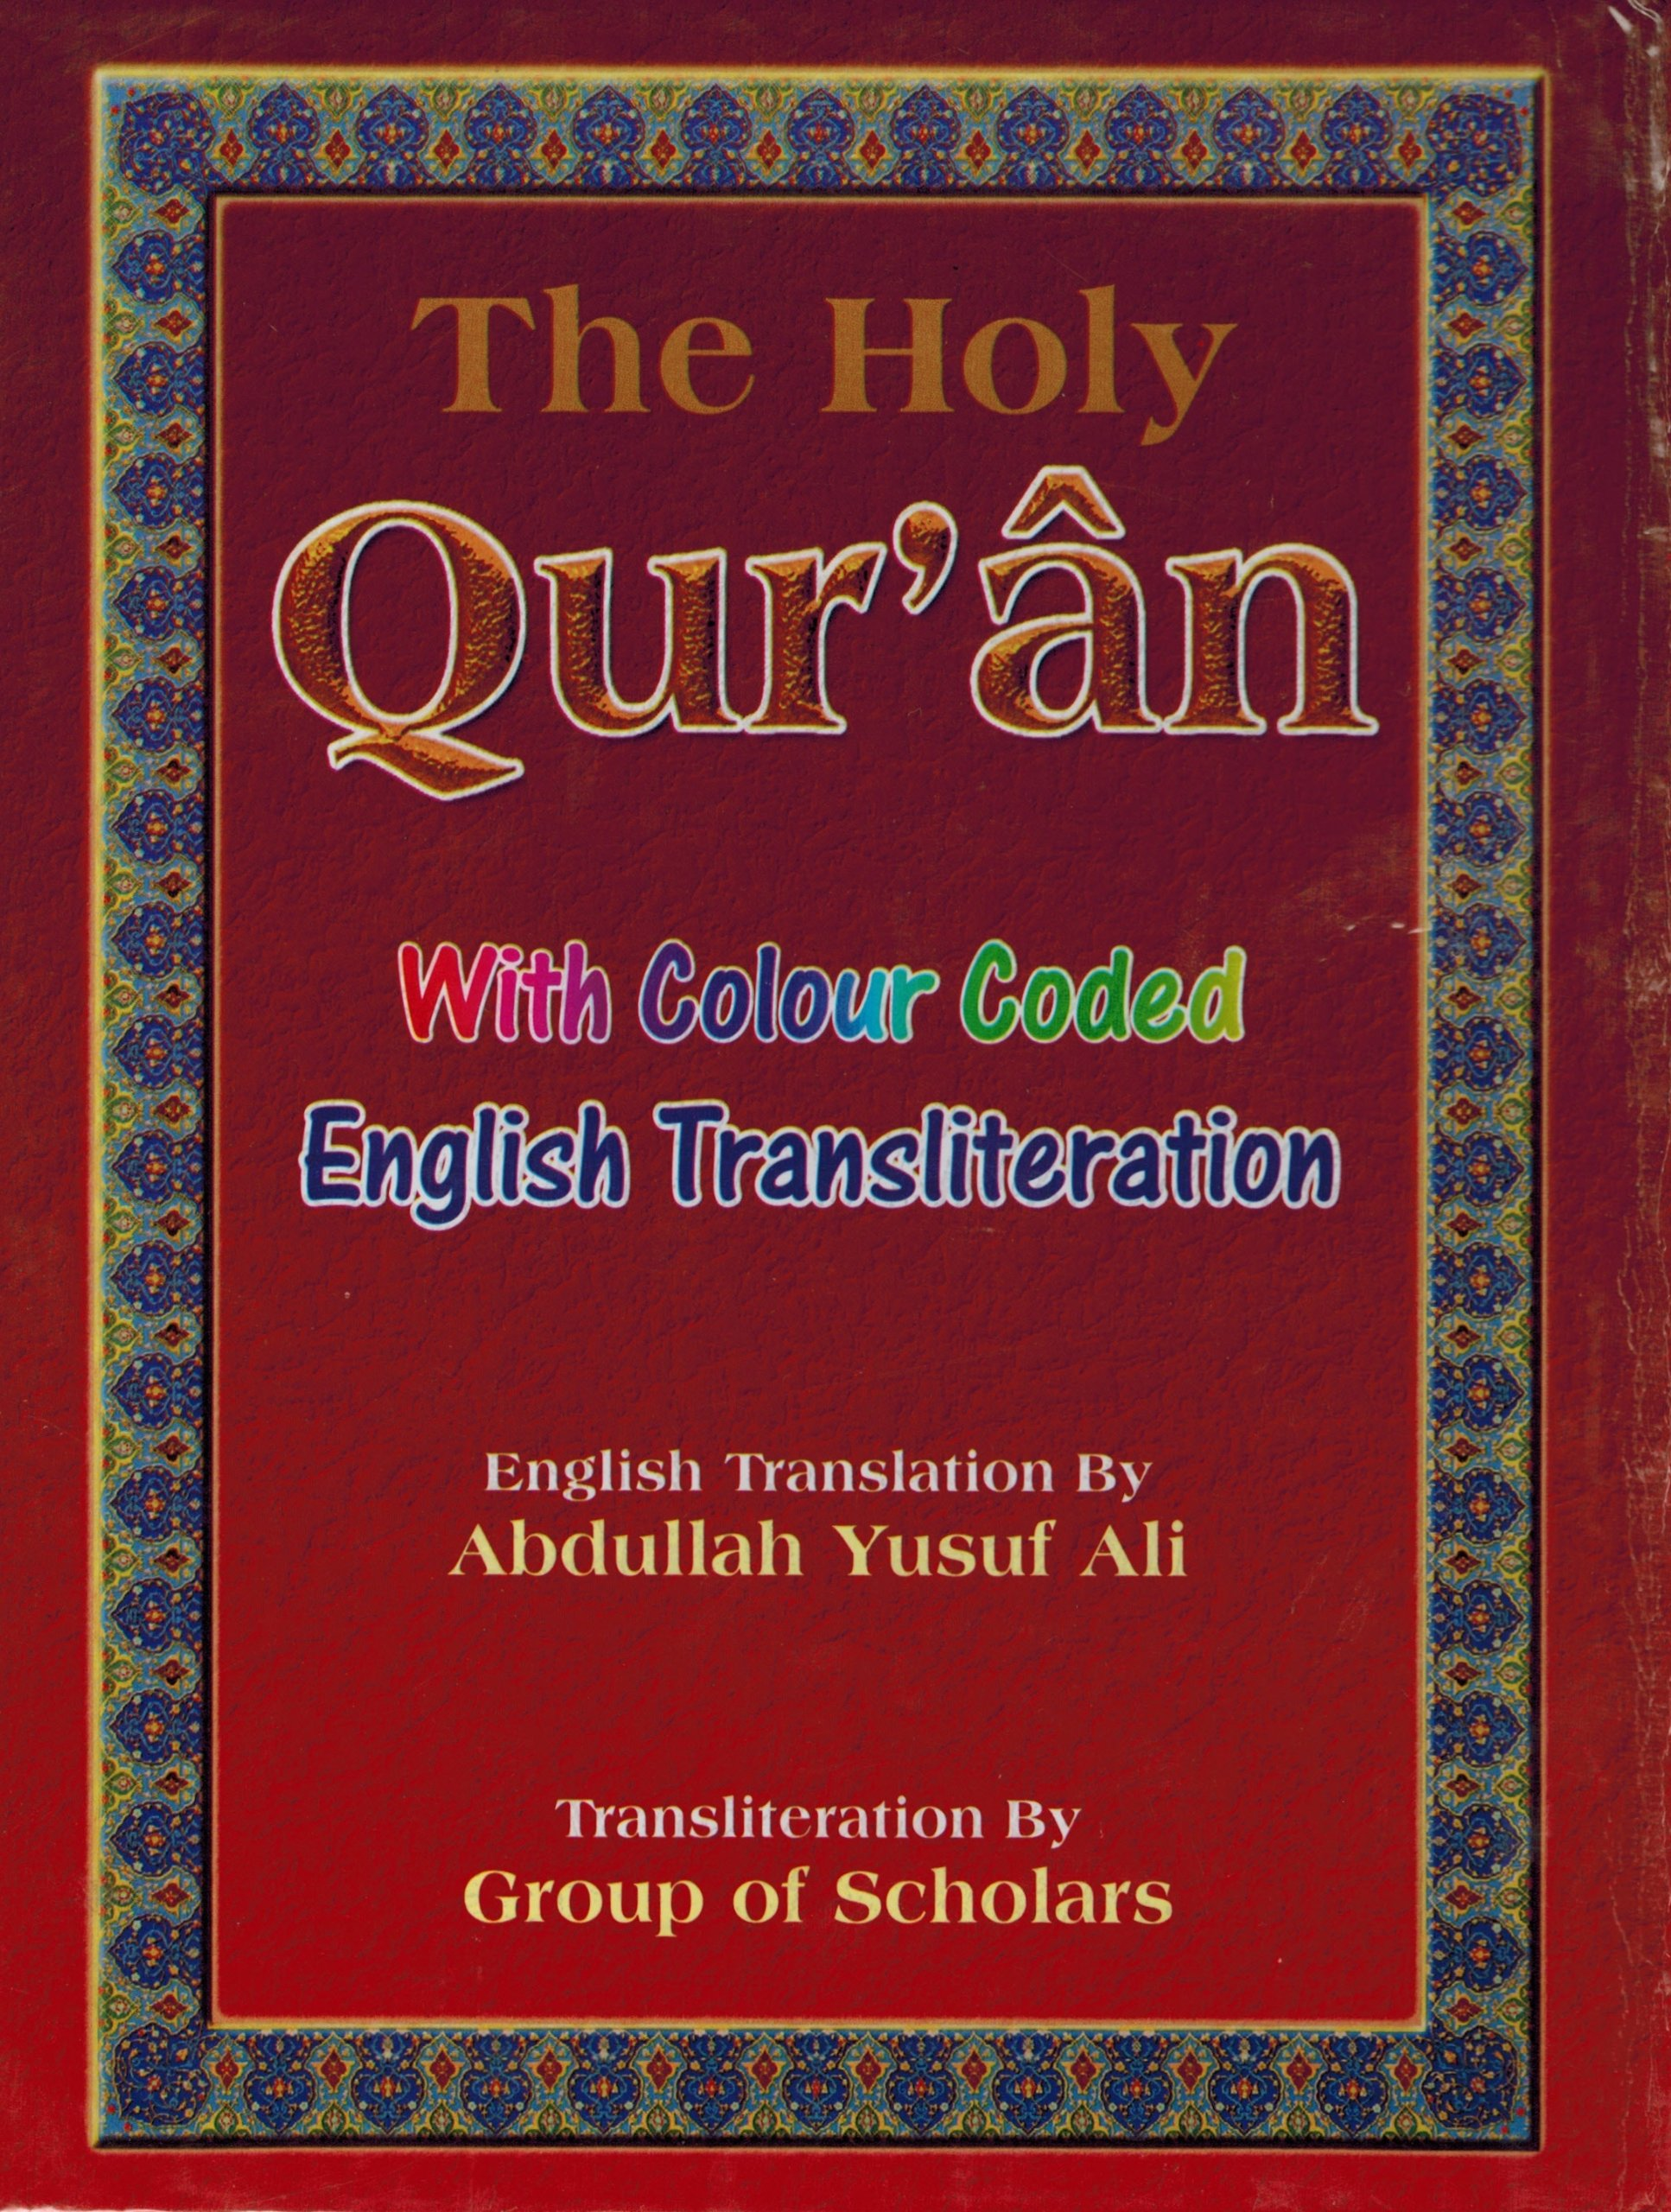 The Holy Quran with Color Coded English Transliteration and